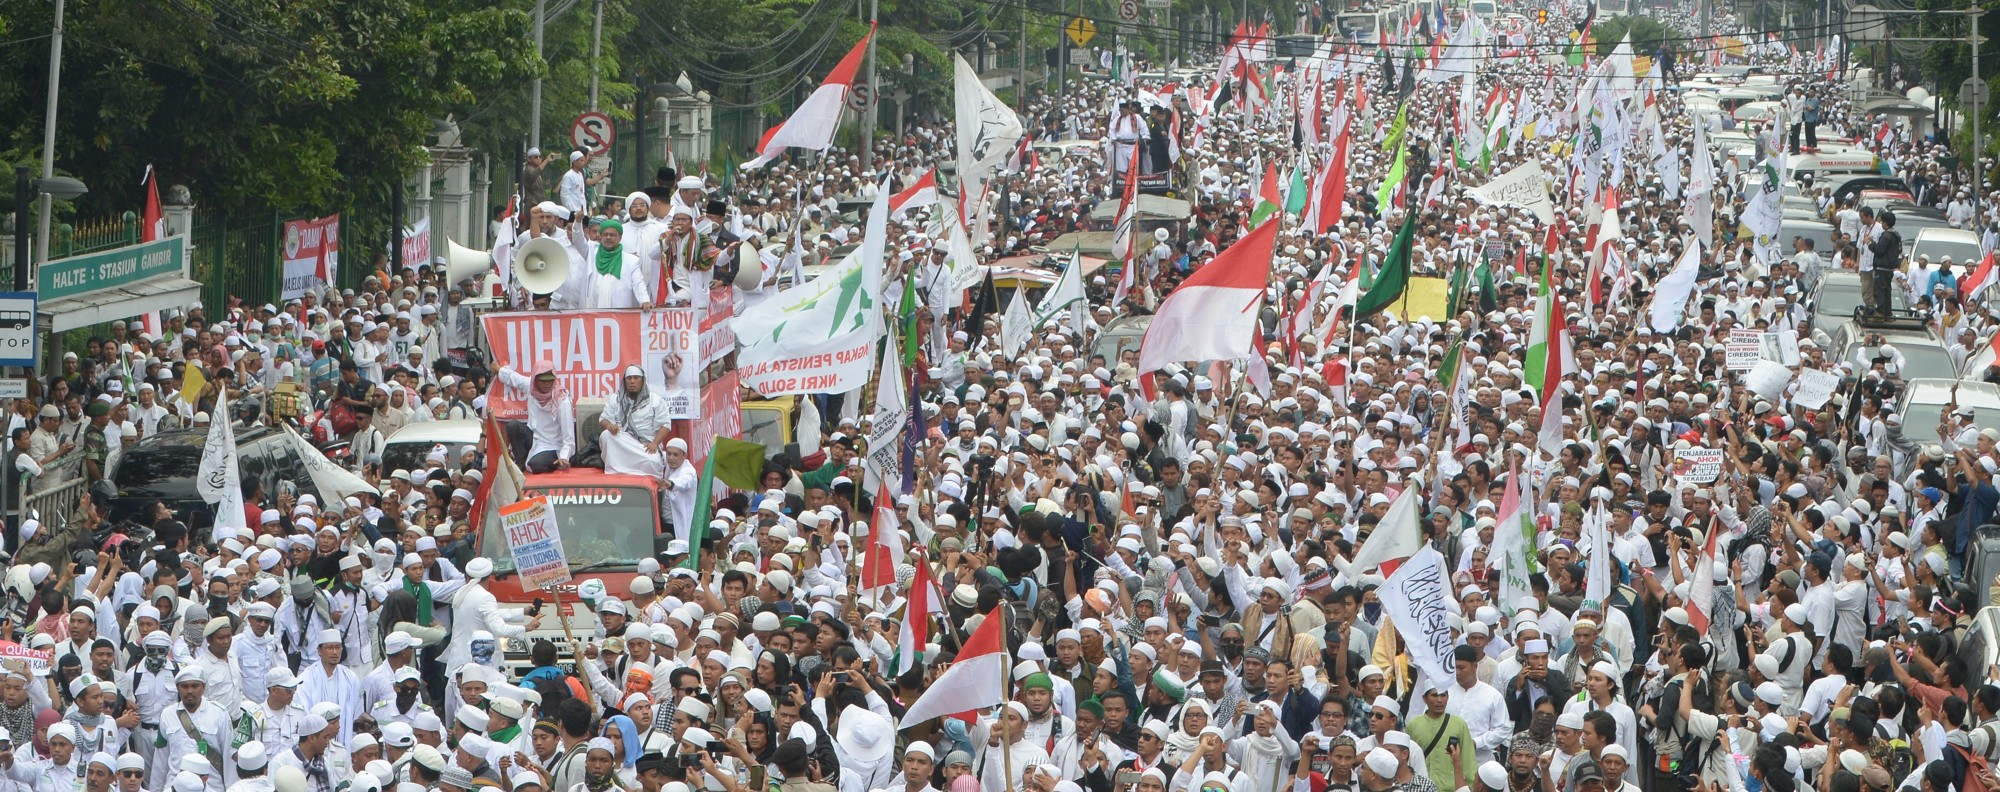 It's been two years since the protests against Ahok. Photo: AFP